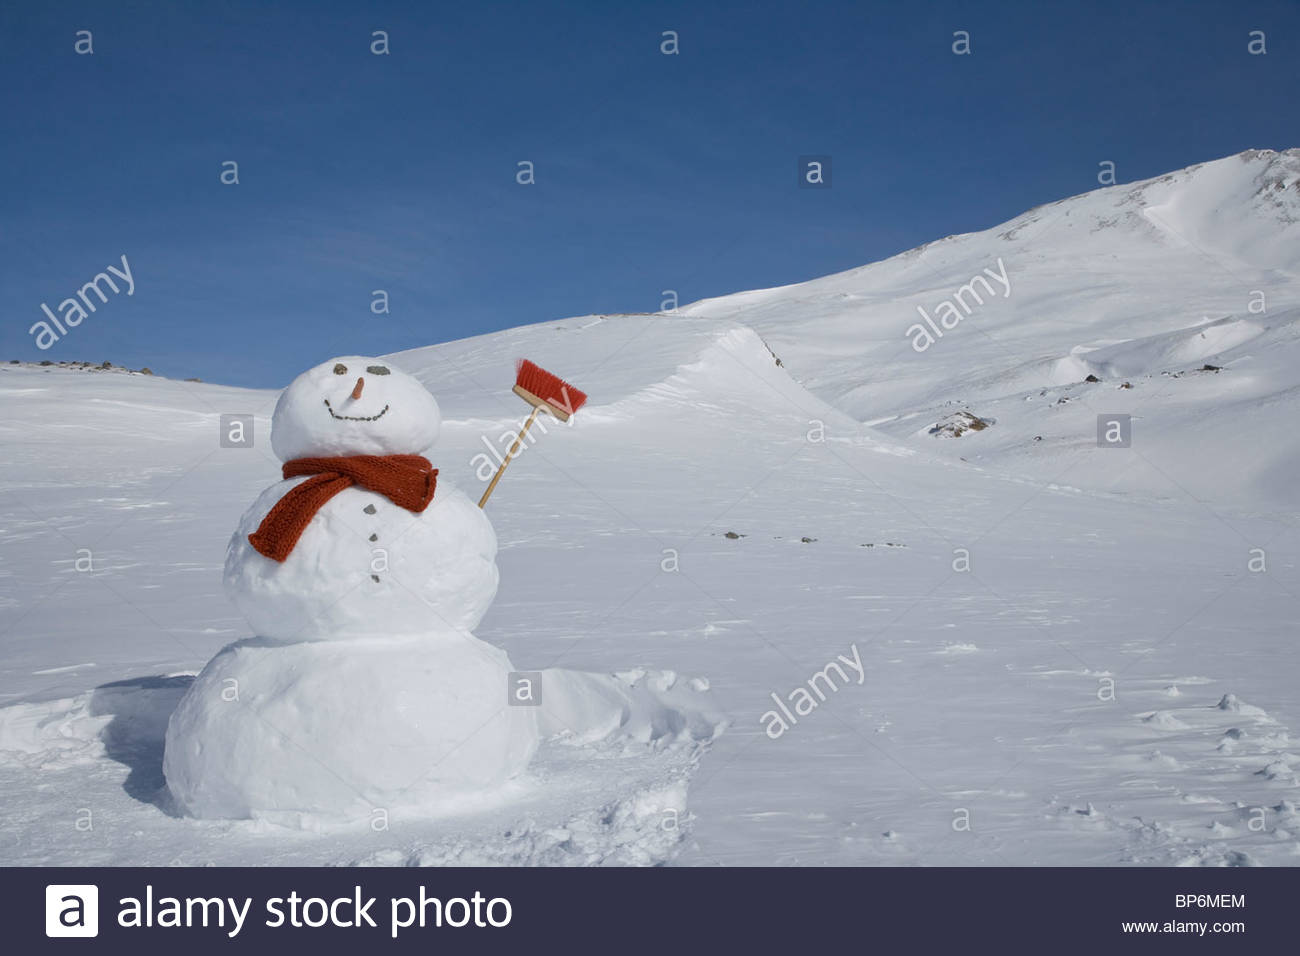 Snowman with broom in mountains on winter day - Stock Image